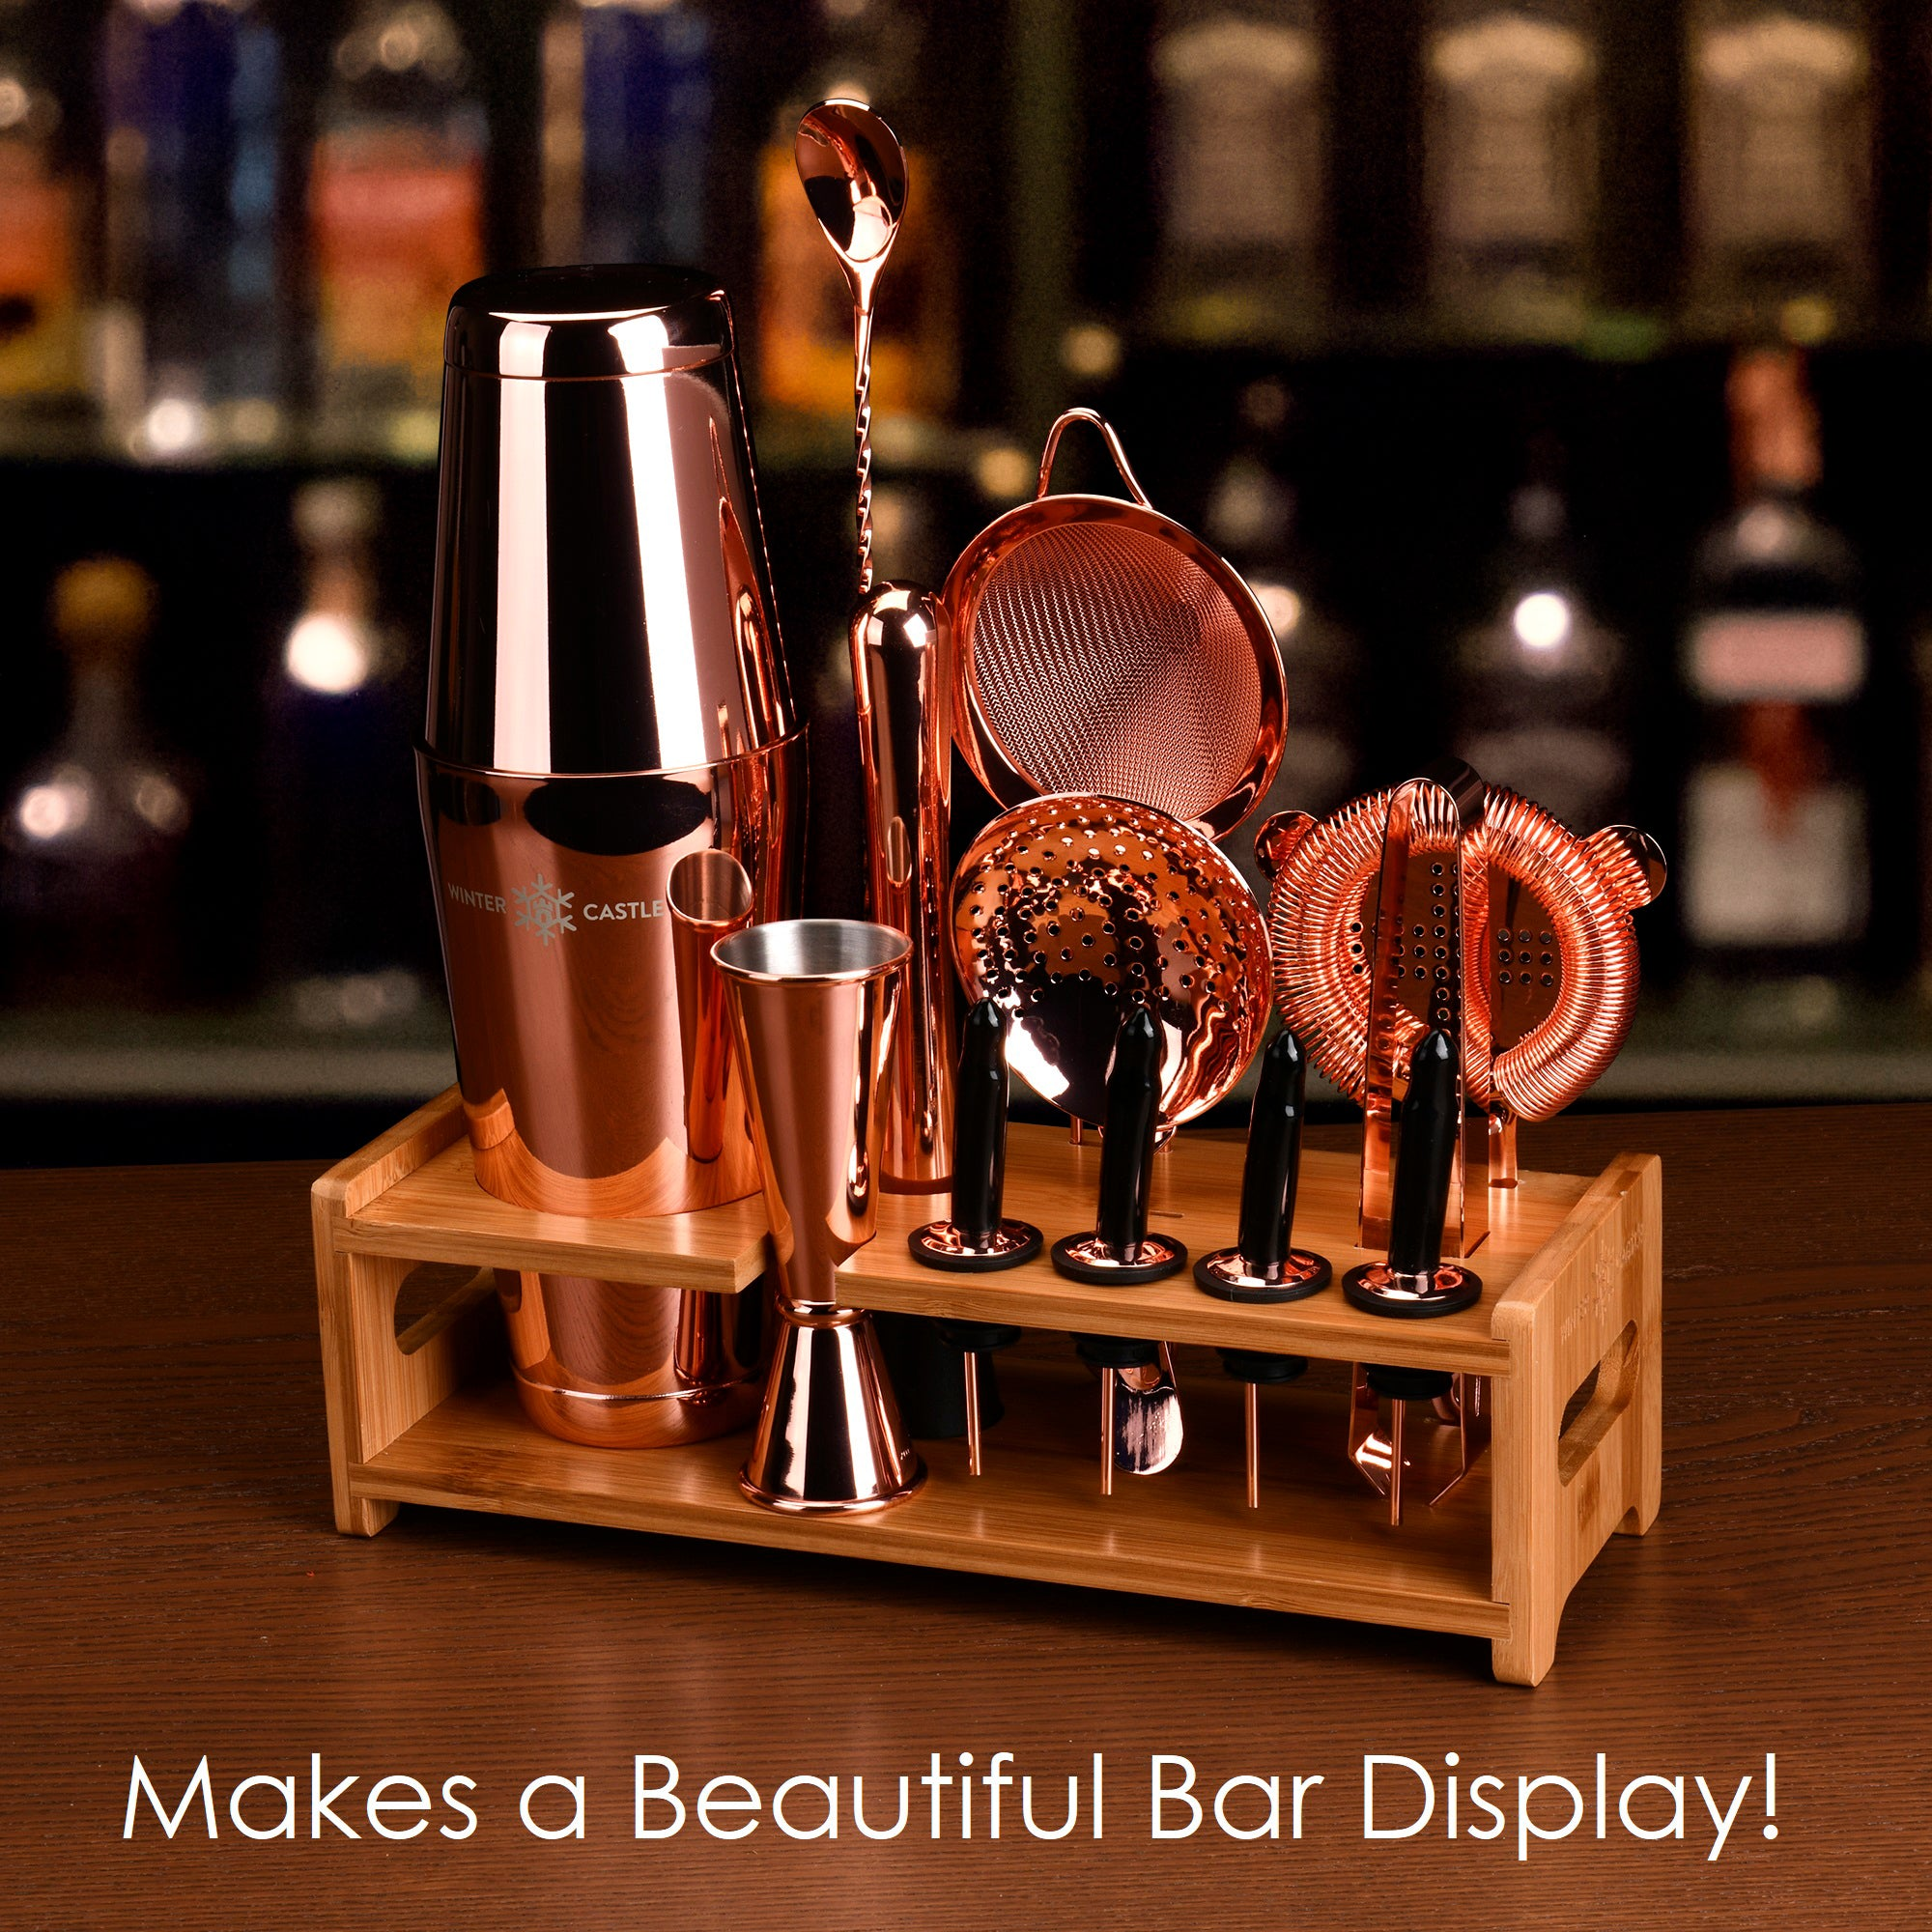 Copper Pro Cocktail Shaker Set by WinterCastle:  The 18-Piece Ultimate Bartender Kit